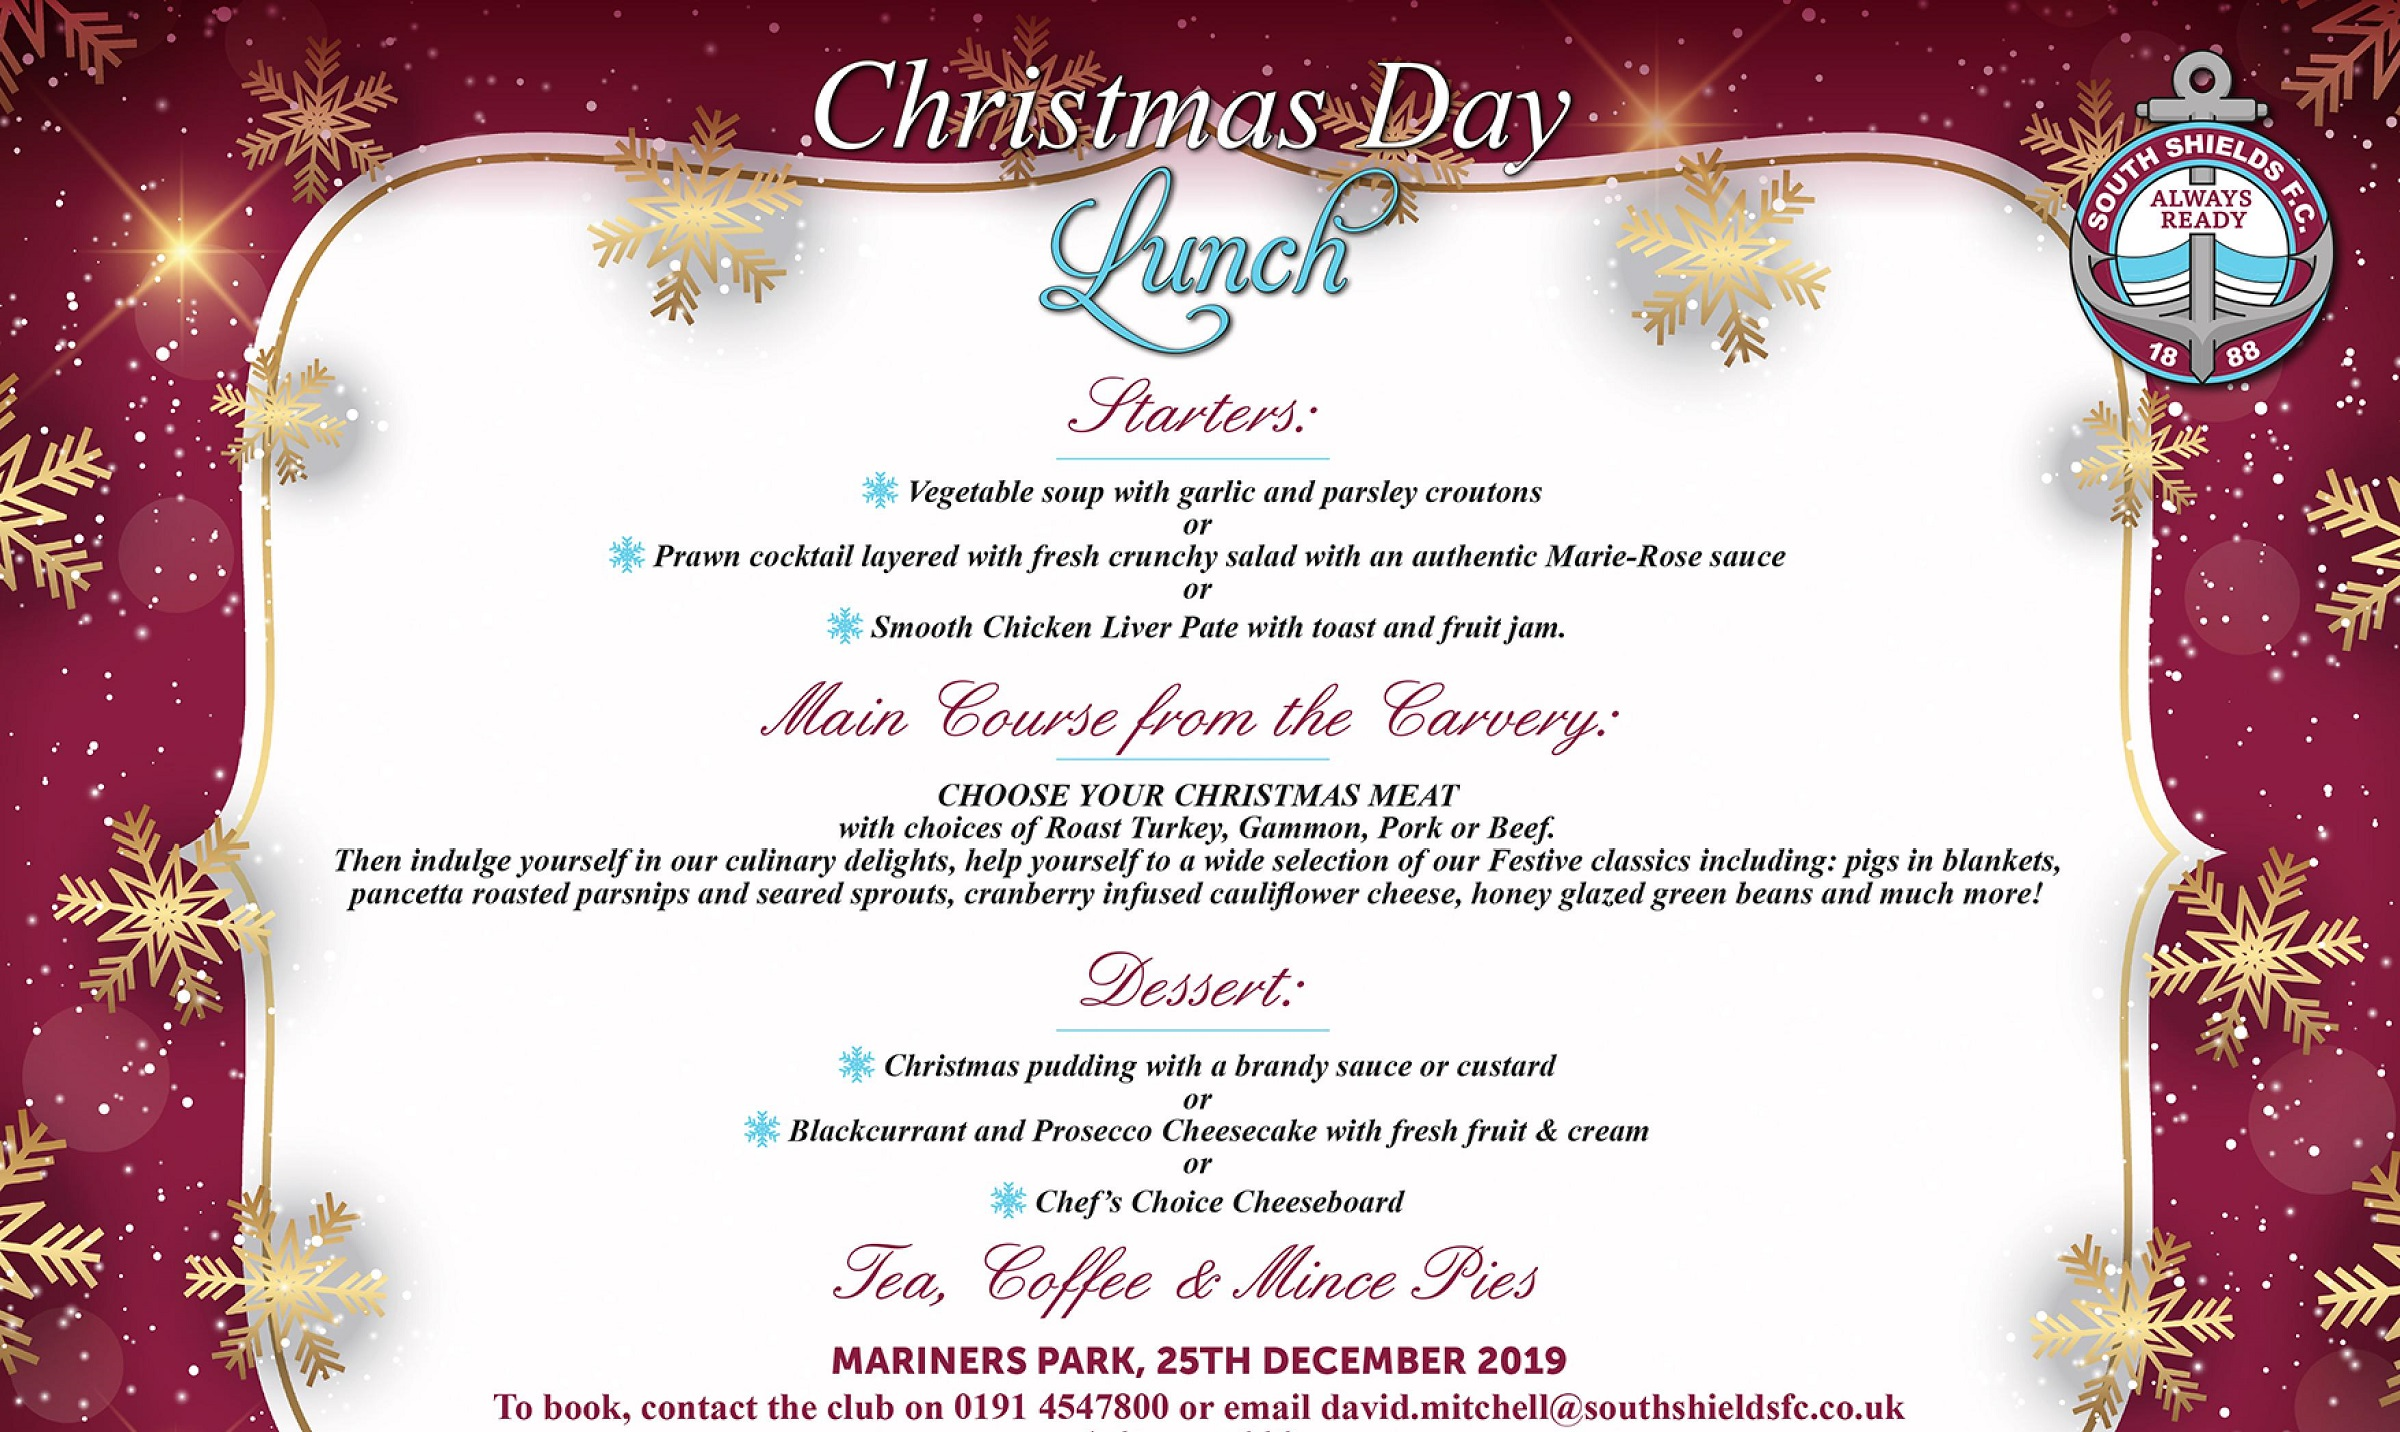 Get booked in for Christmas Day lunch at Mariners Park!